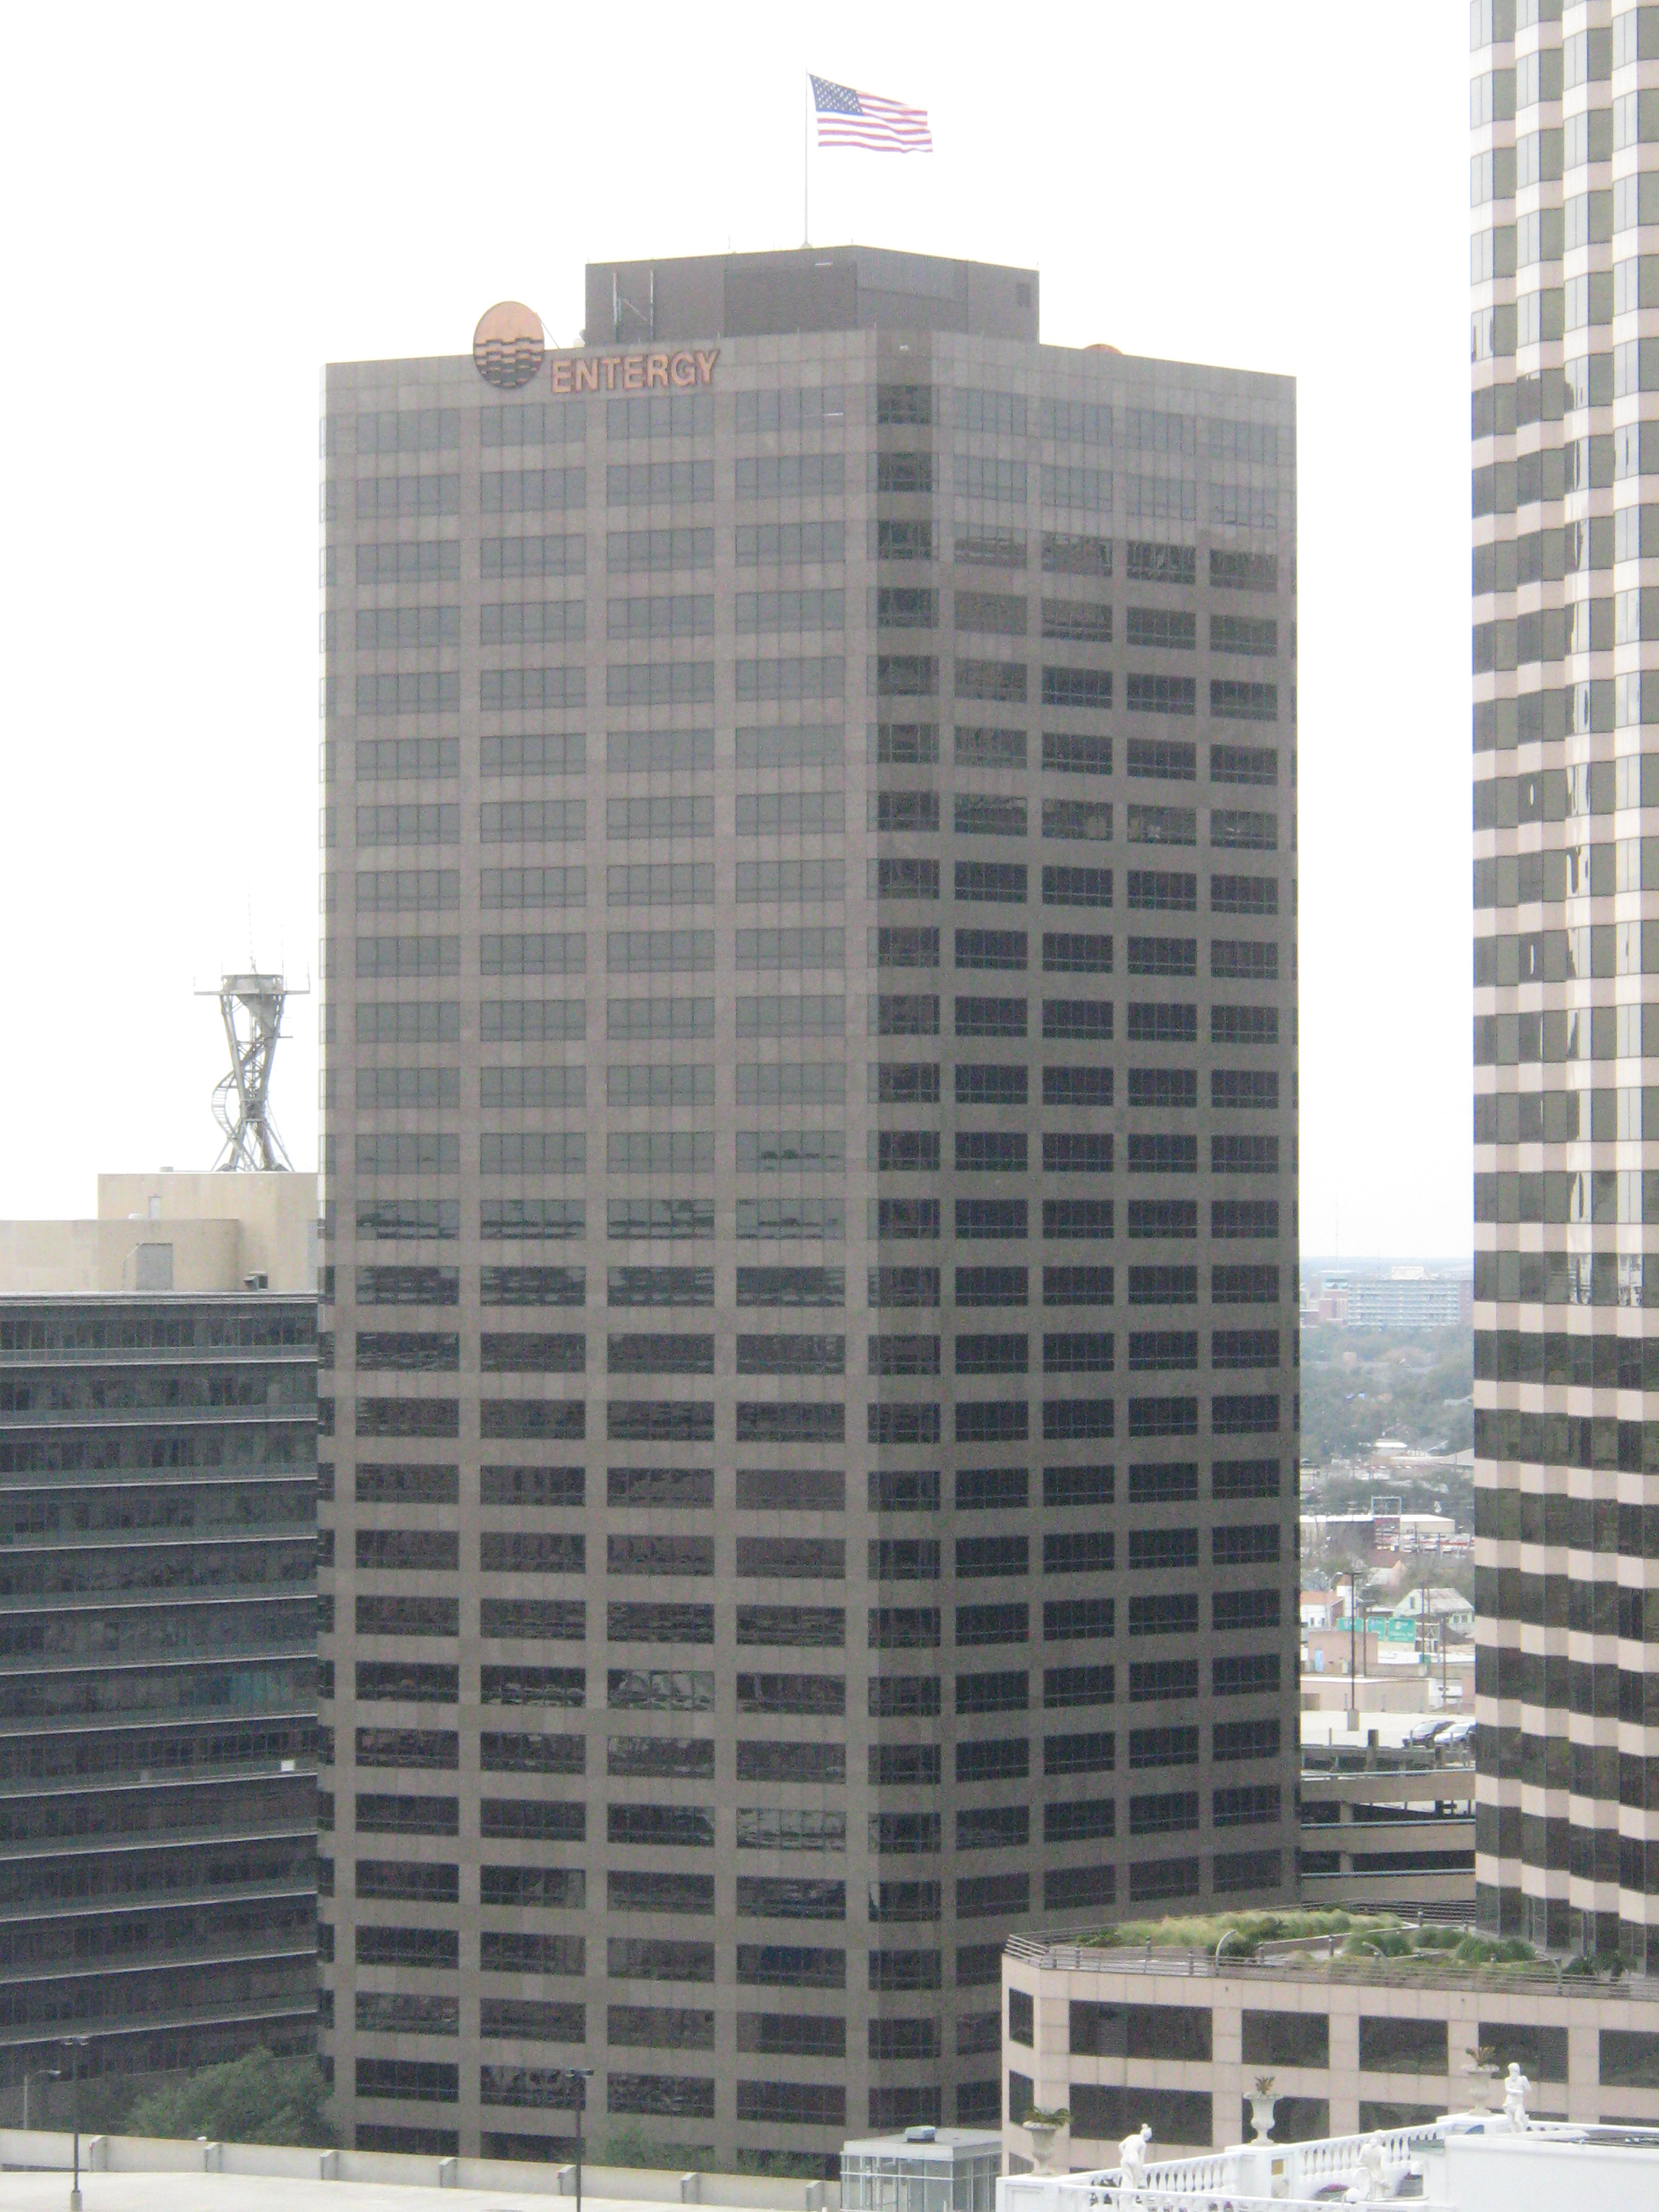 File:New Orleans, Louisiana , Entergy building from Hilton